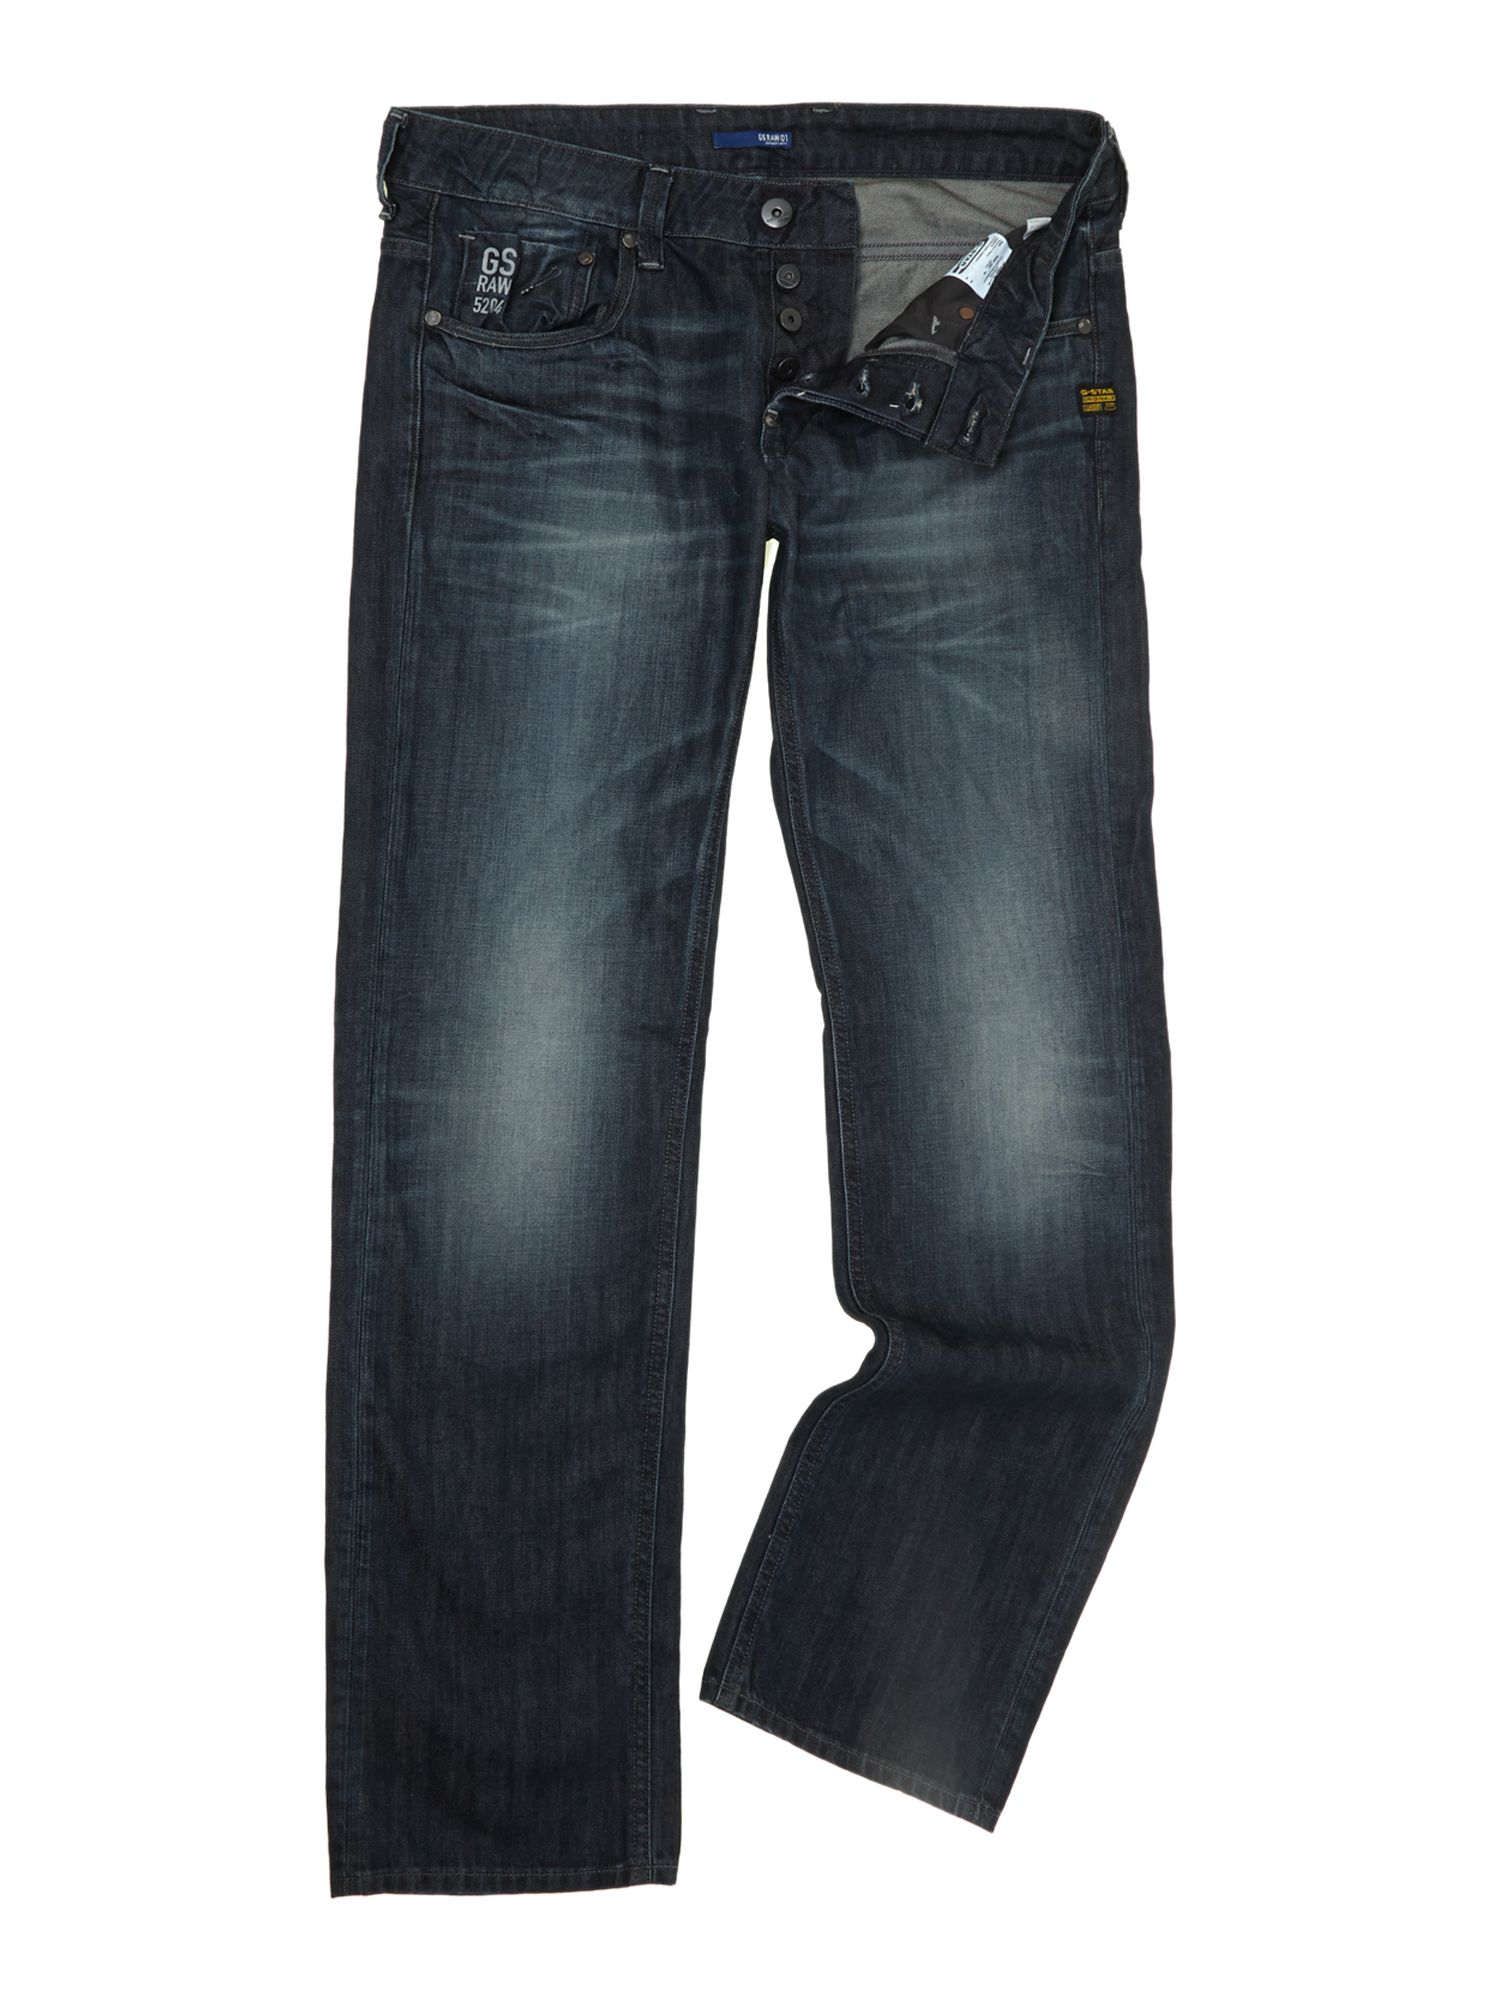 Discover style and comfort together when you shop Gap's low rise jeans collection. Low Rise Jeans Gap Collection. When you want fashionable jeans with a modern fit, look no further than our women's low rise denim collection at Gap. We carry a large assortment of this popular pant in .